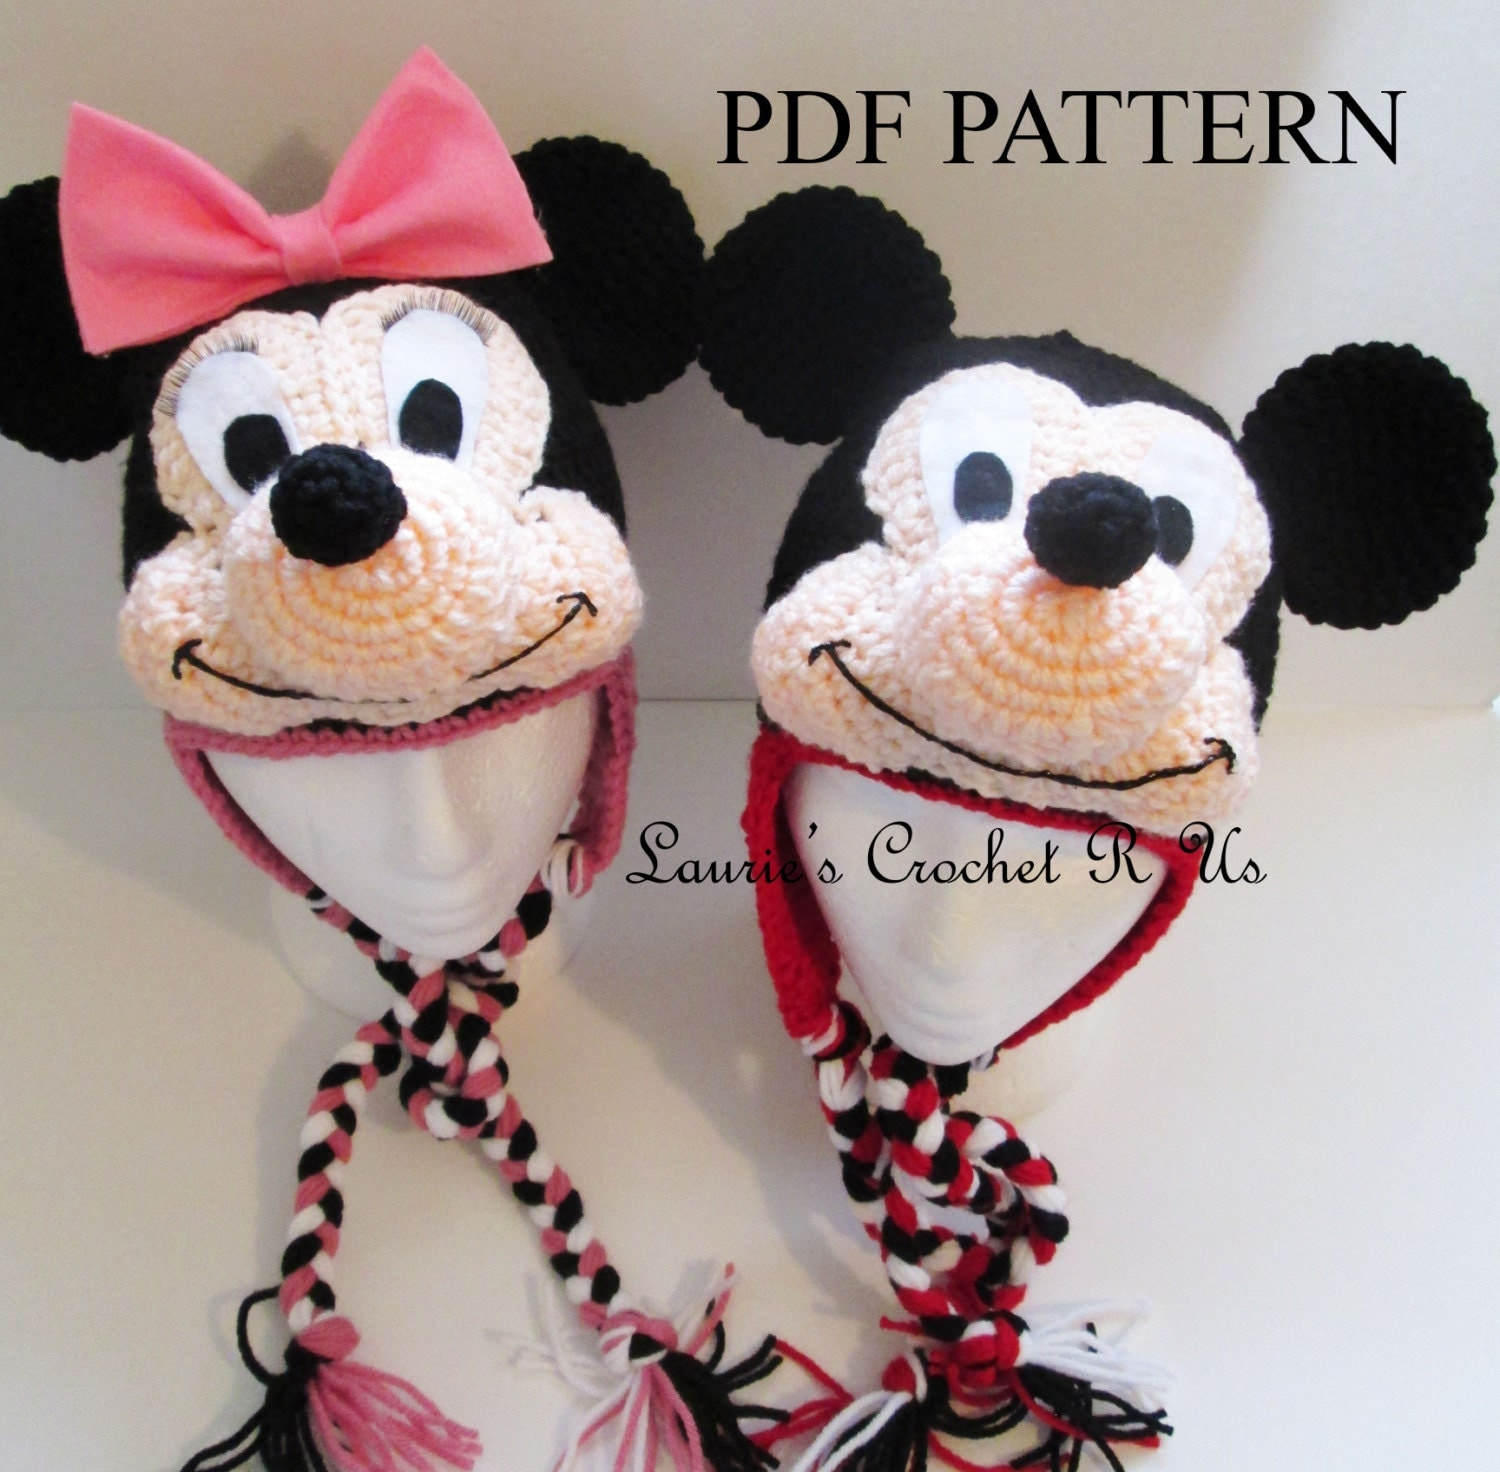 Free Crochet Patterns For Disney Hats : Crochet Mouse Hat Pattern Girl & Boy Mouse by ...